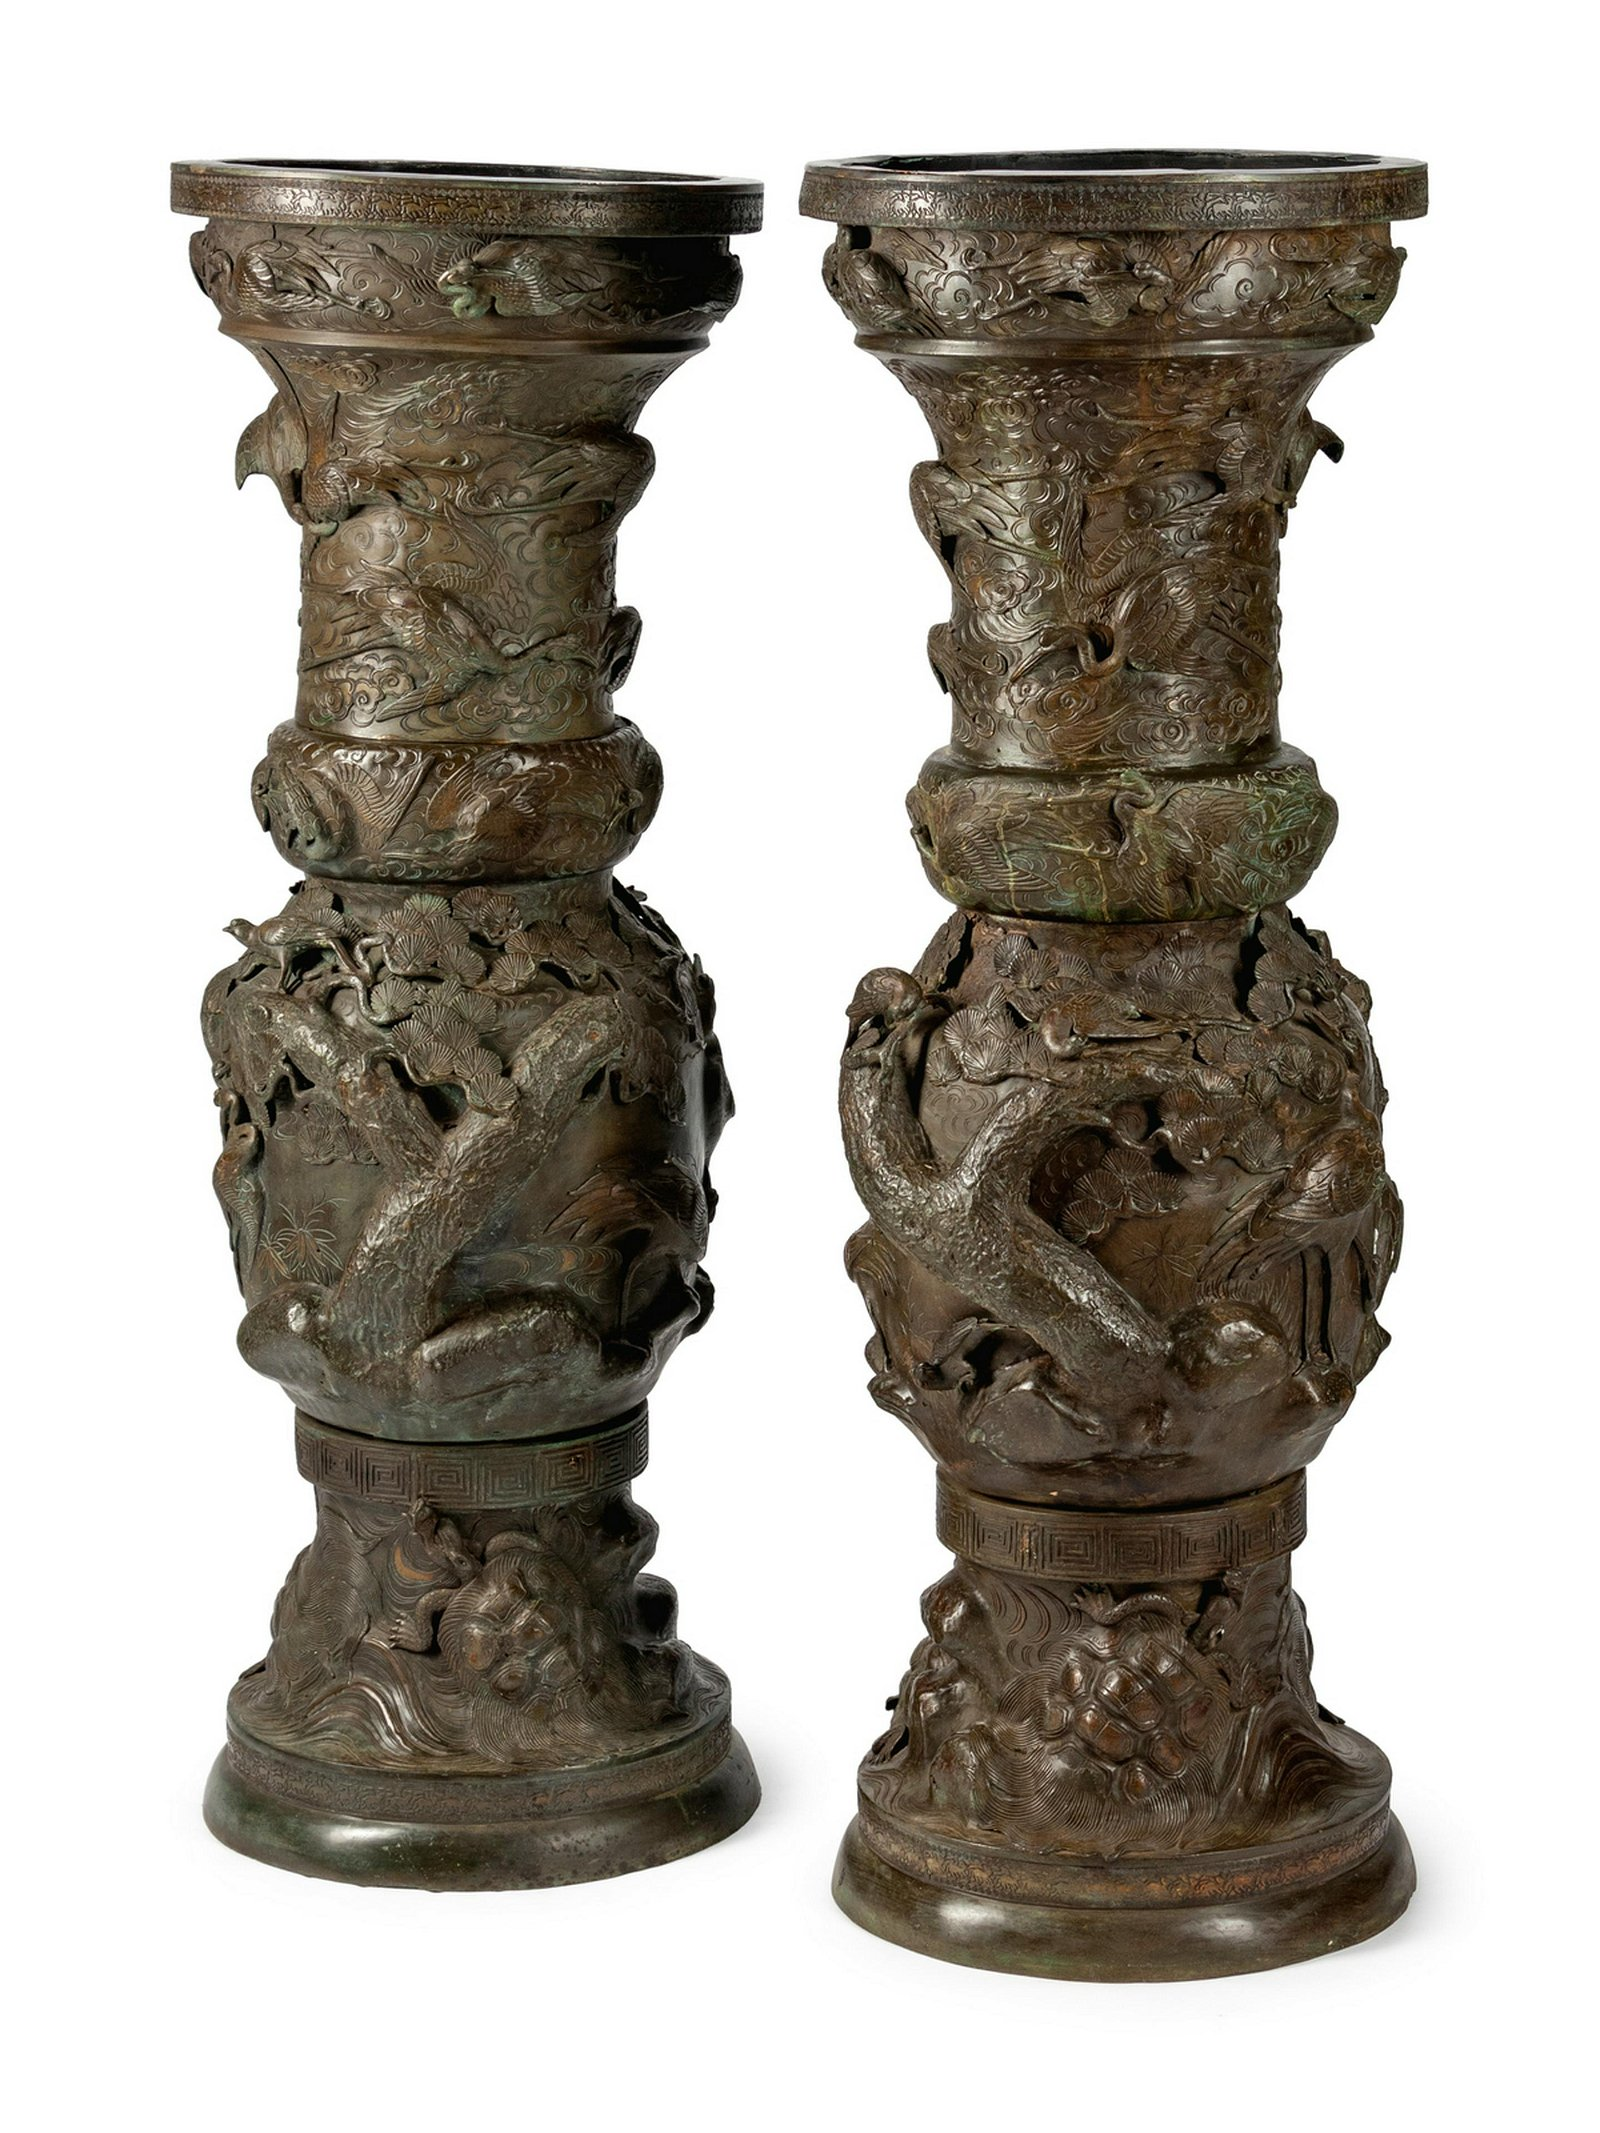 A Pair of Monumental Japanese Patinated Bronze Urns